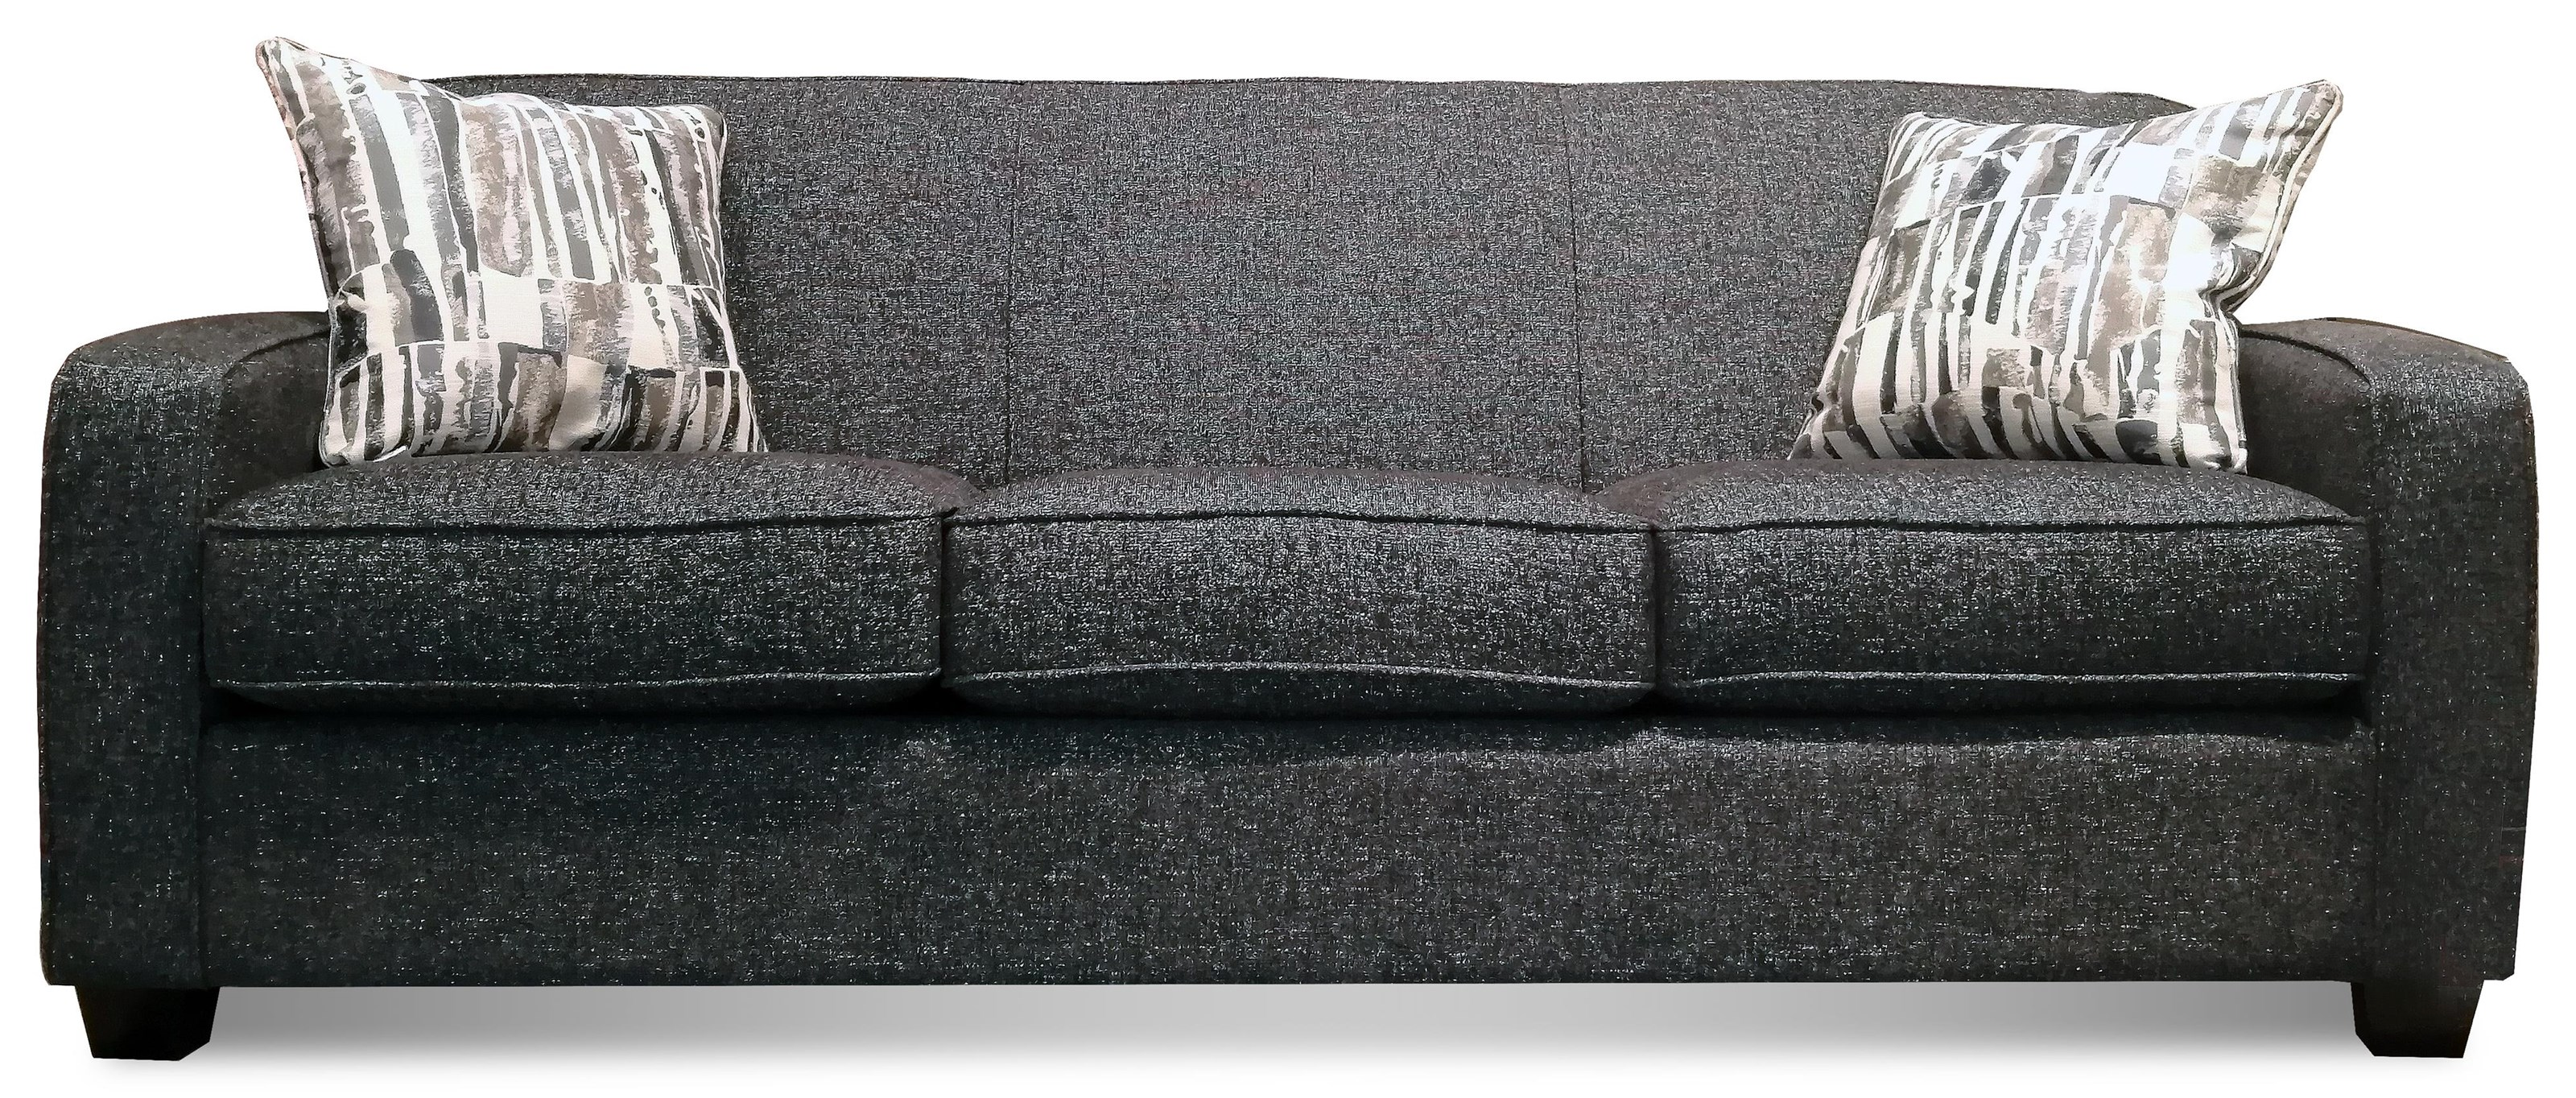 2401 Stationary Sofa by Decor-Rest at Upper Room Home Furnishings